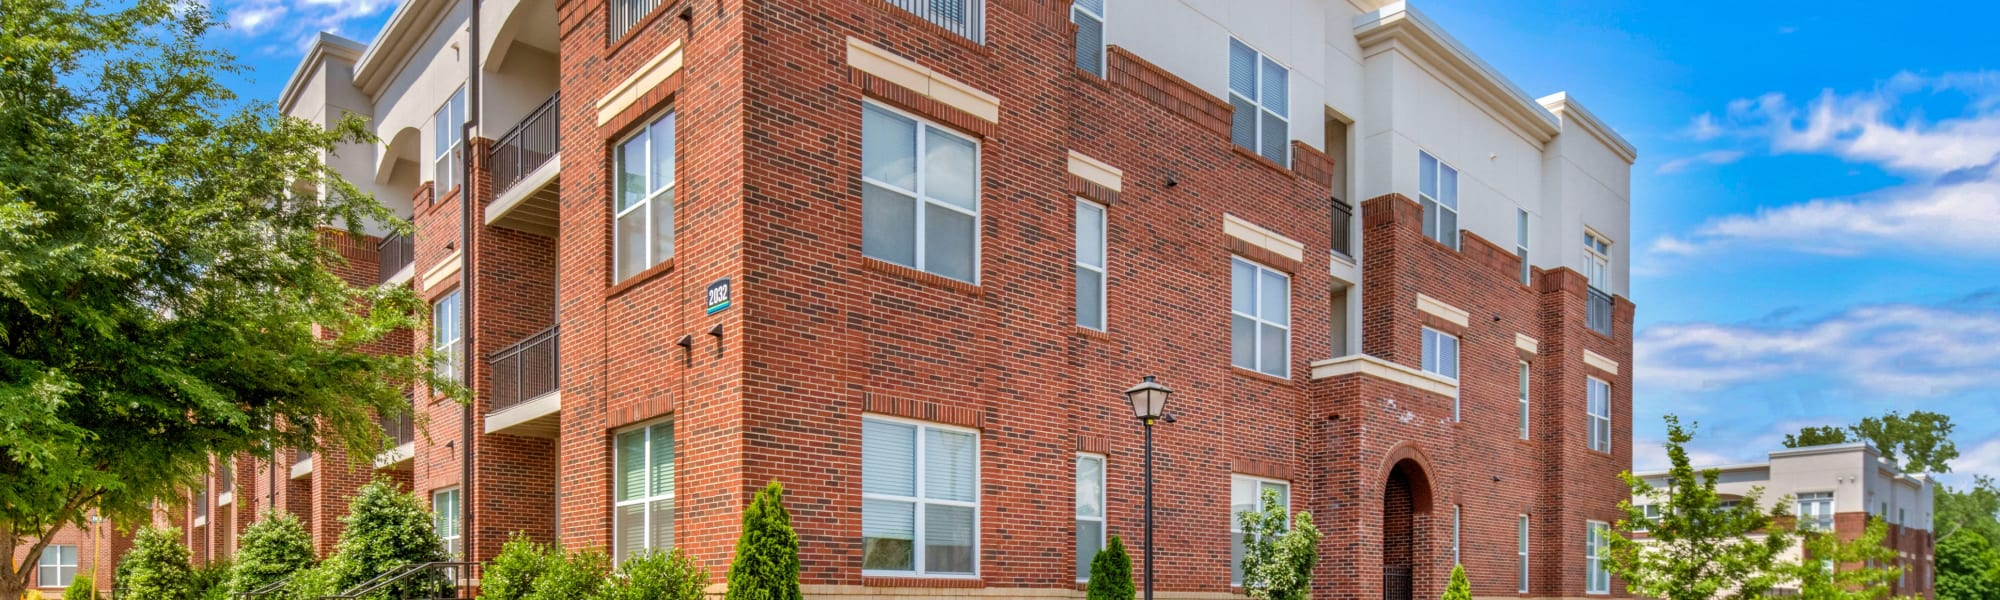 Floor plans at Morehead West in Charlotte, North Carolina